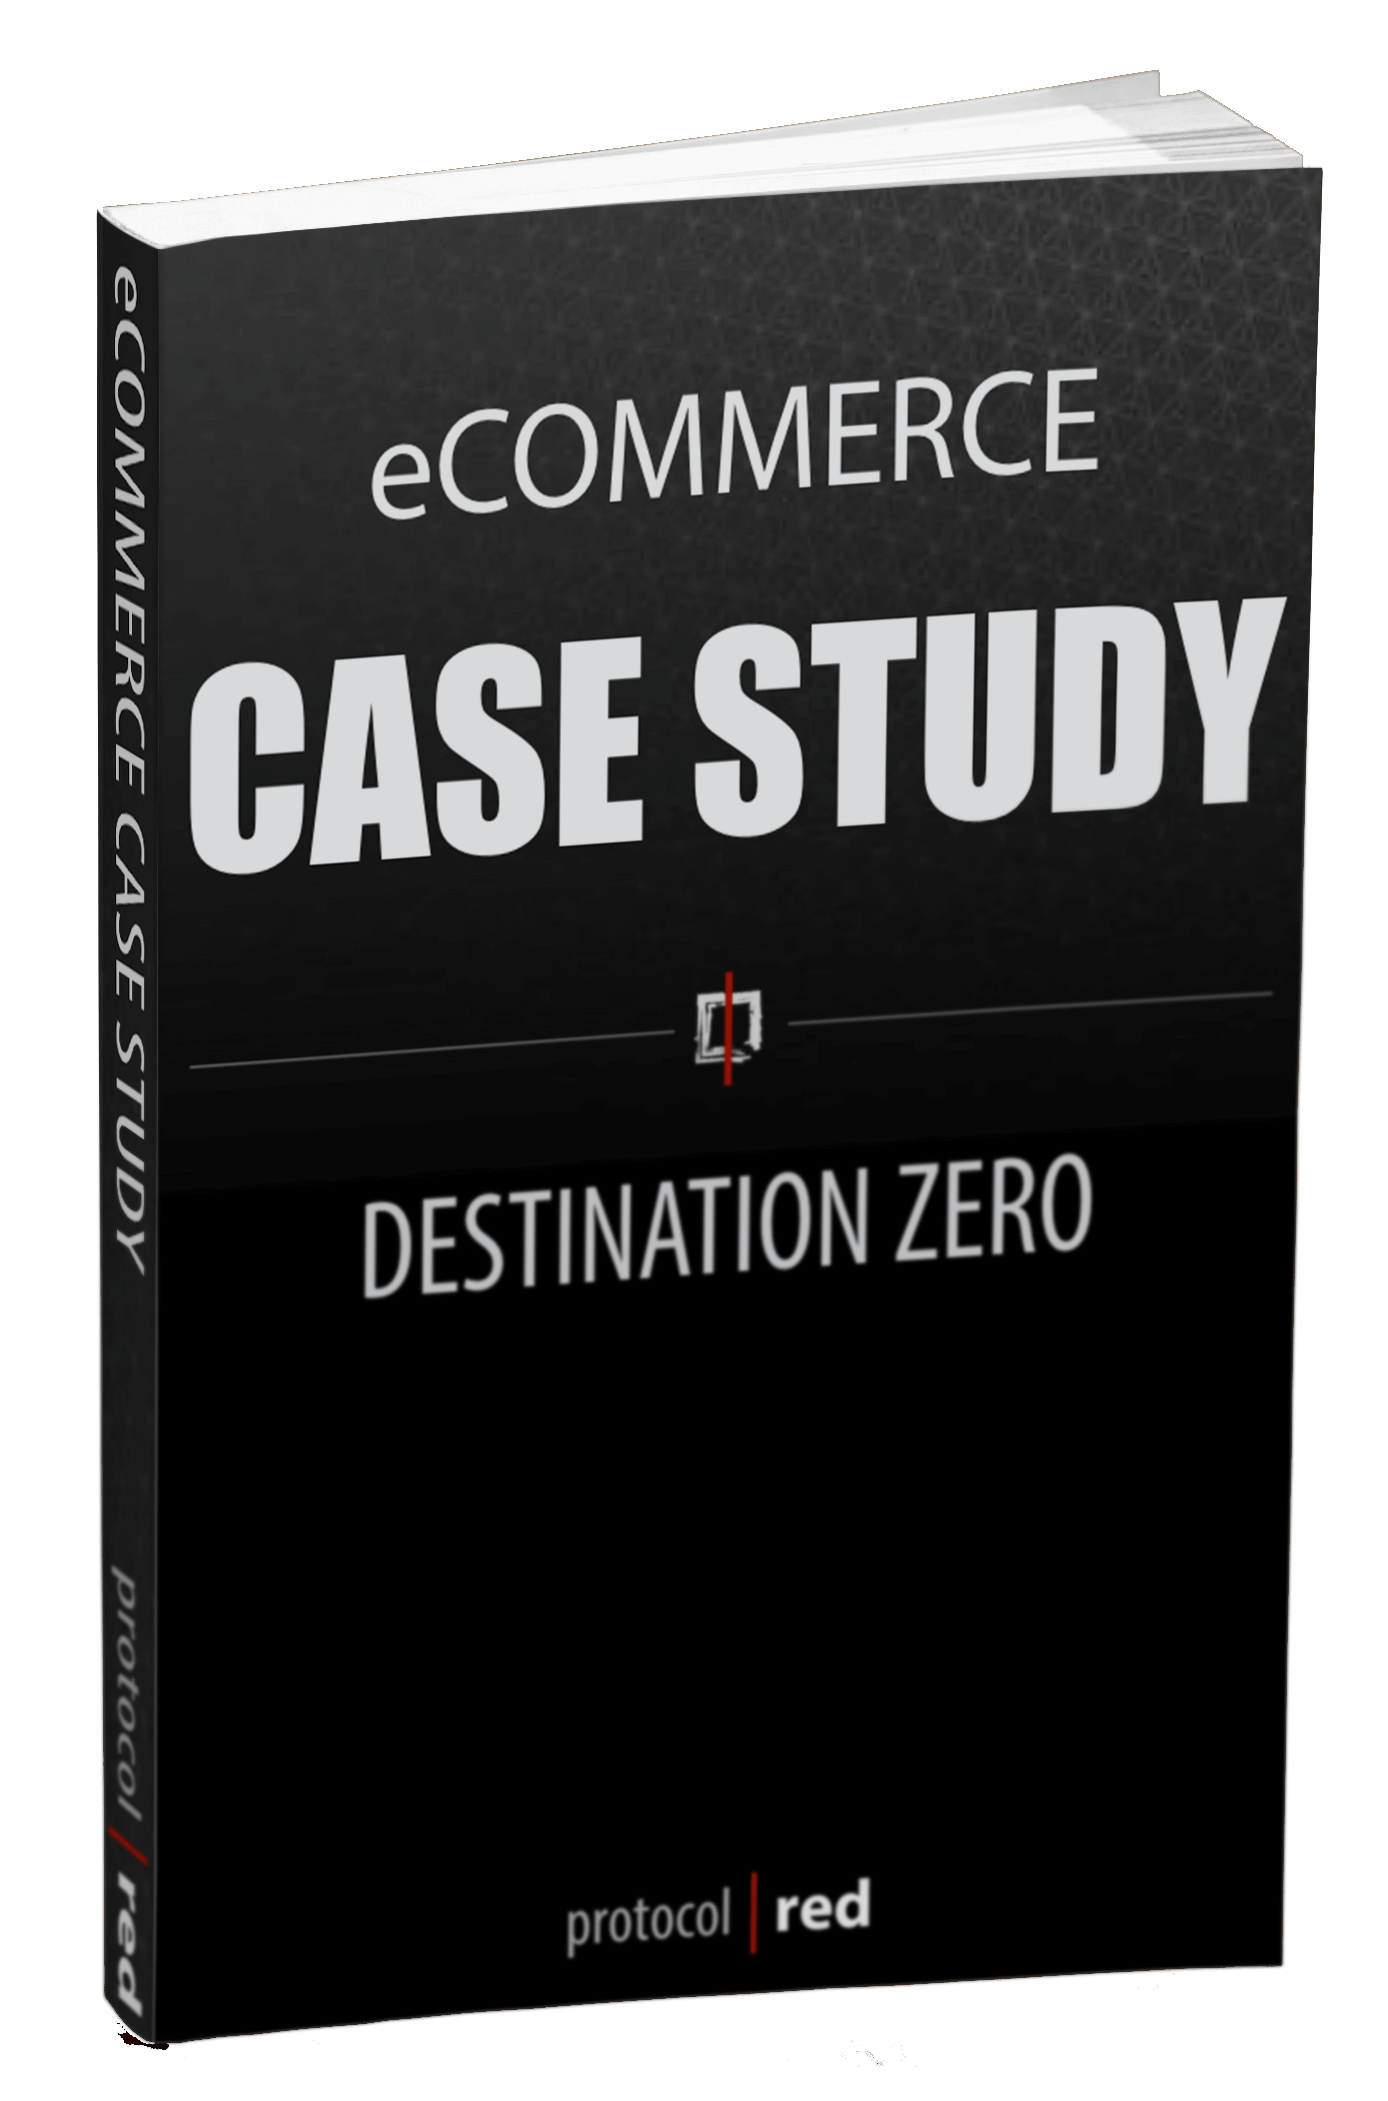 case study book cover